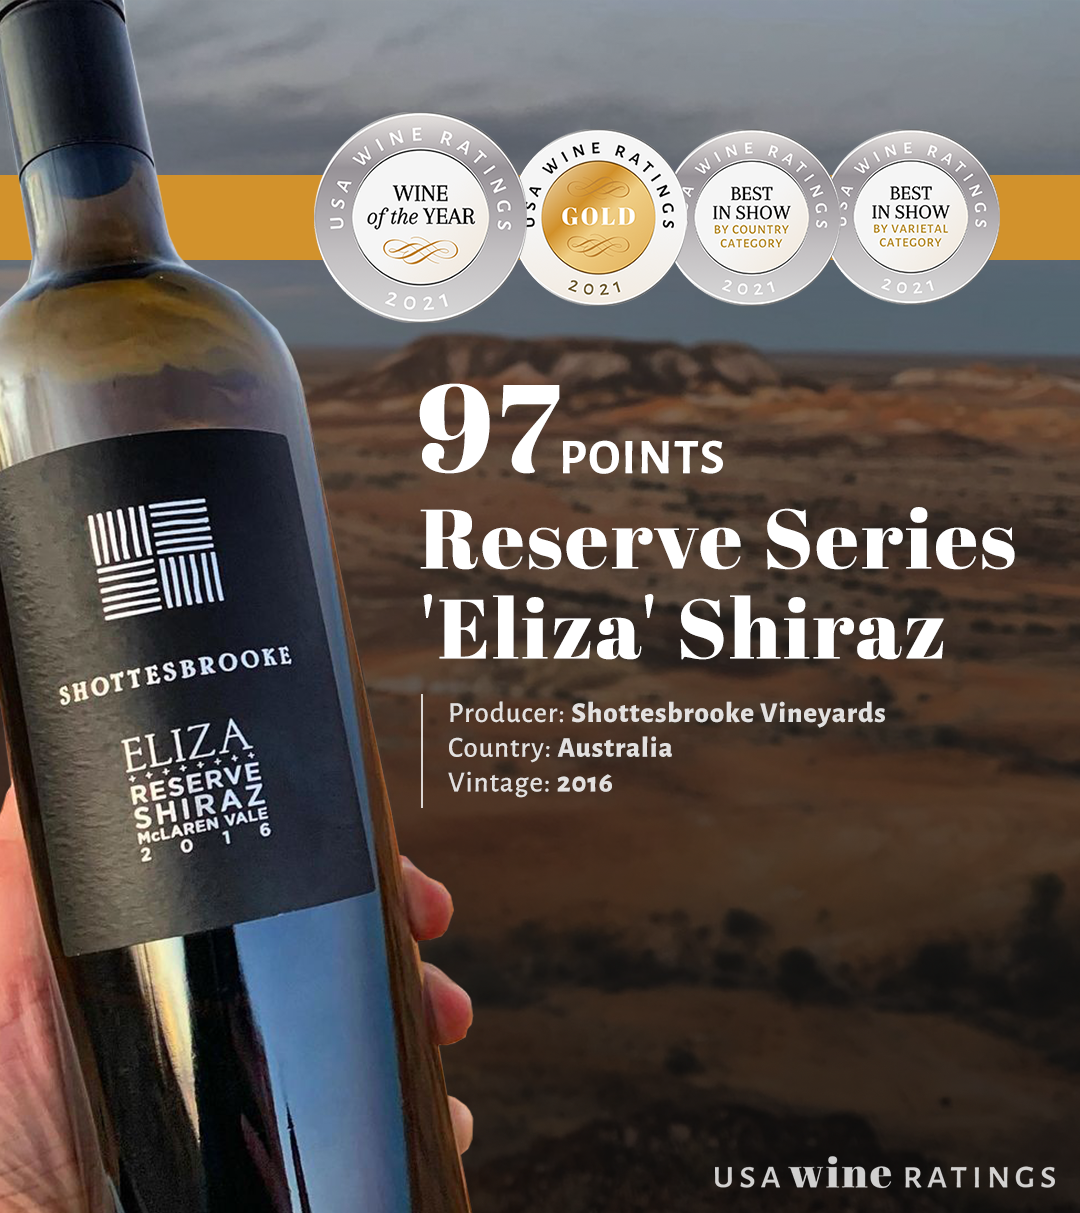 Shottesbrooke Reserve Series 'Eliza' Shiraz gets the best wine award with 97 points